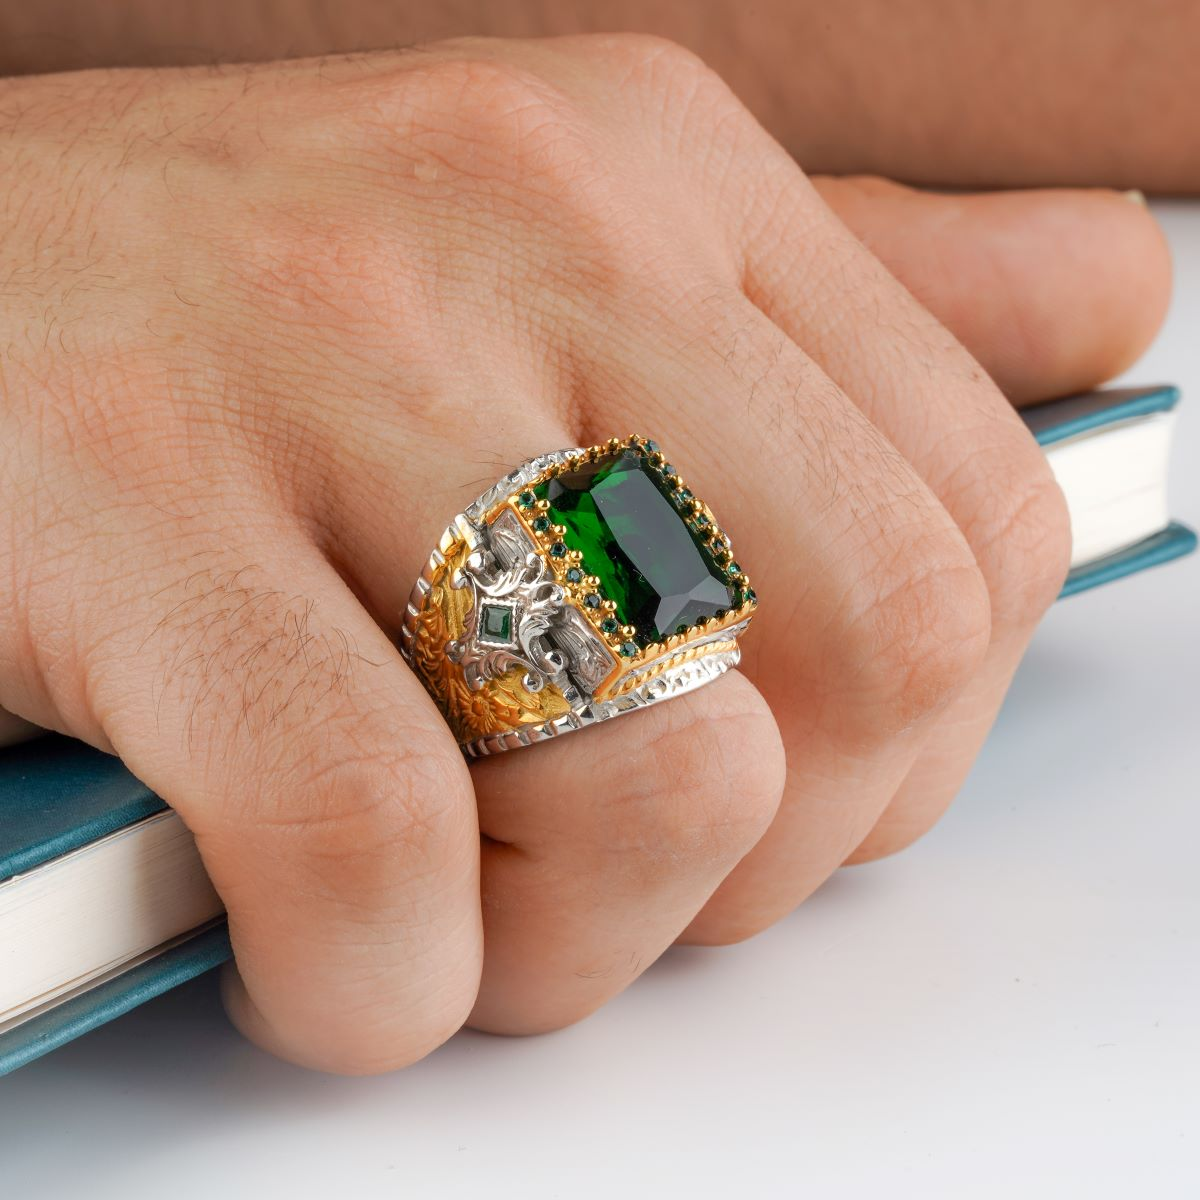 custom Jewelry Guaranteed High-quality 925 Sterling Silver zircon stone ring   green color  in a luxurious way for men with gift